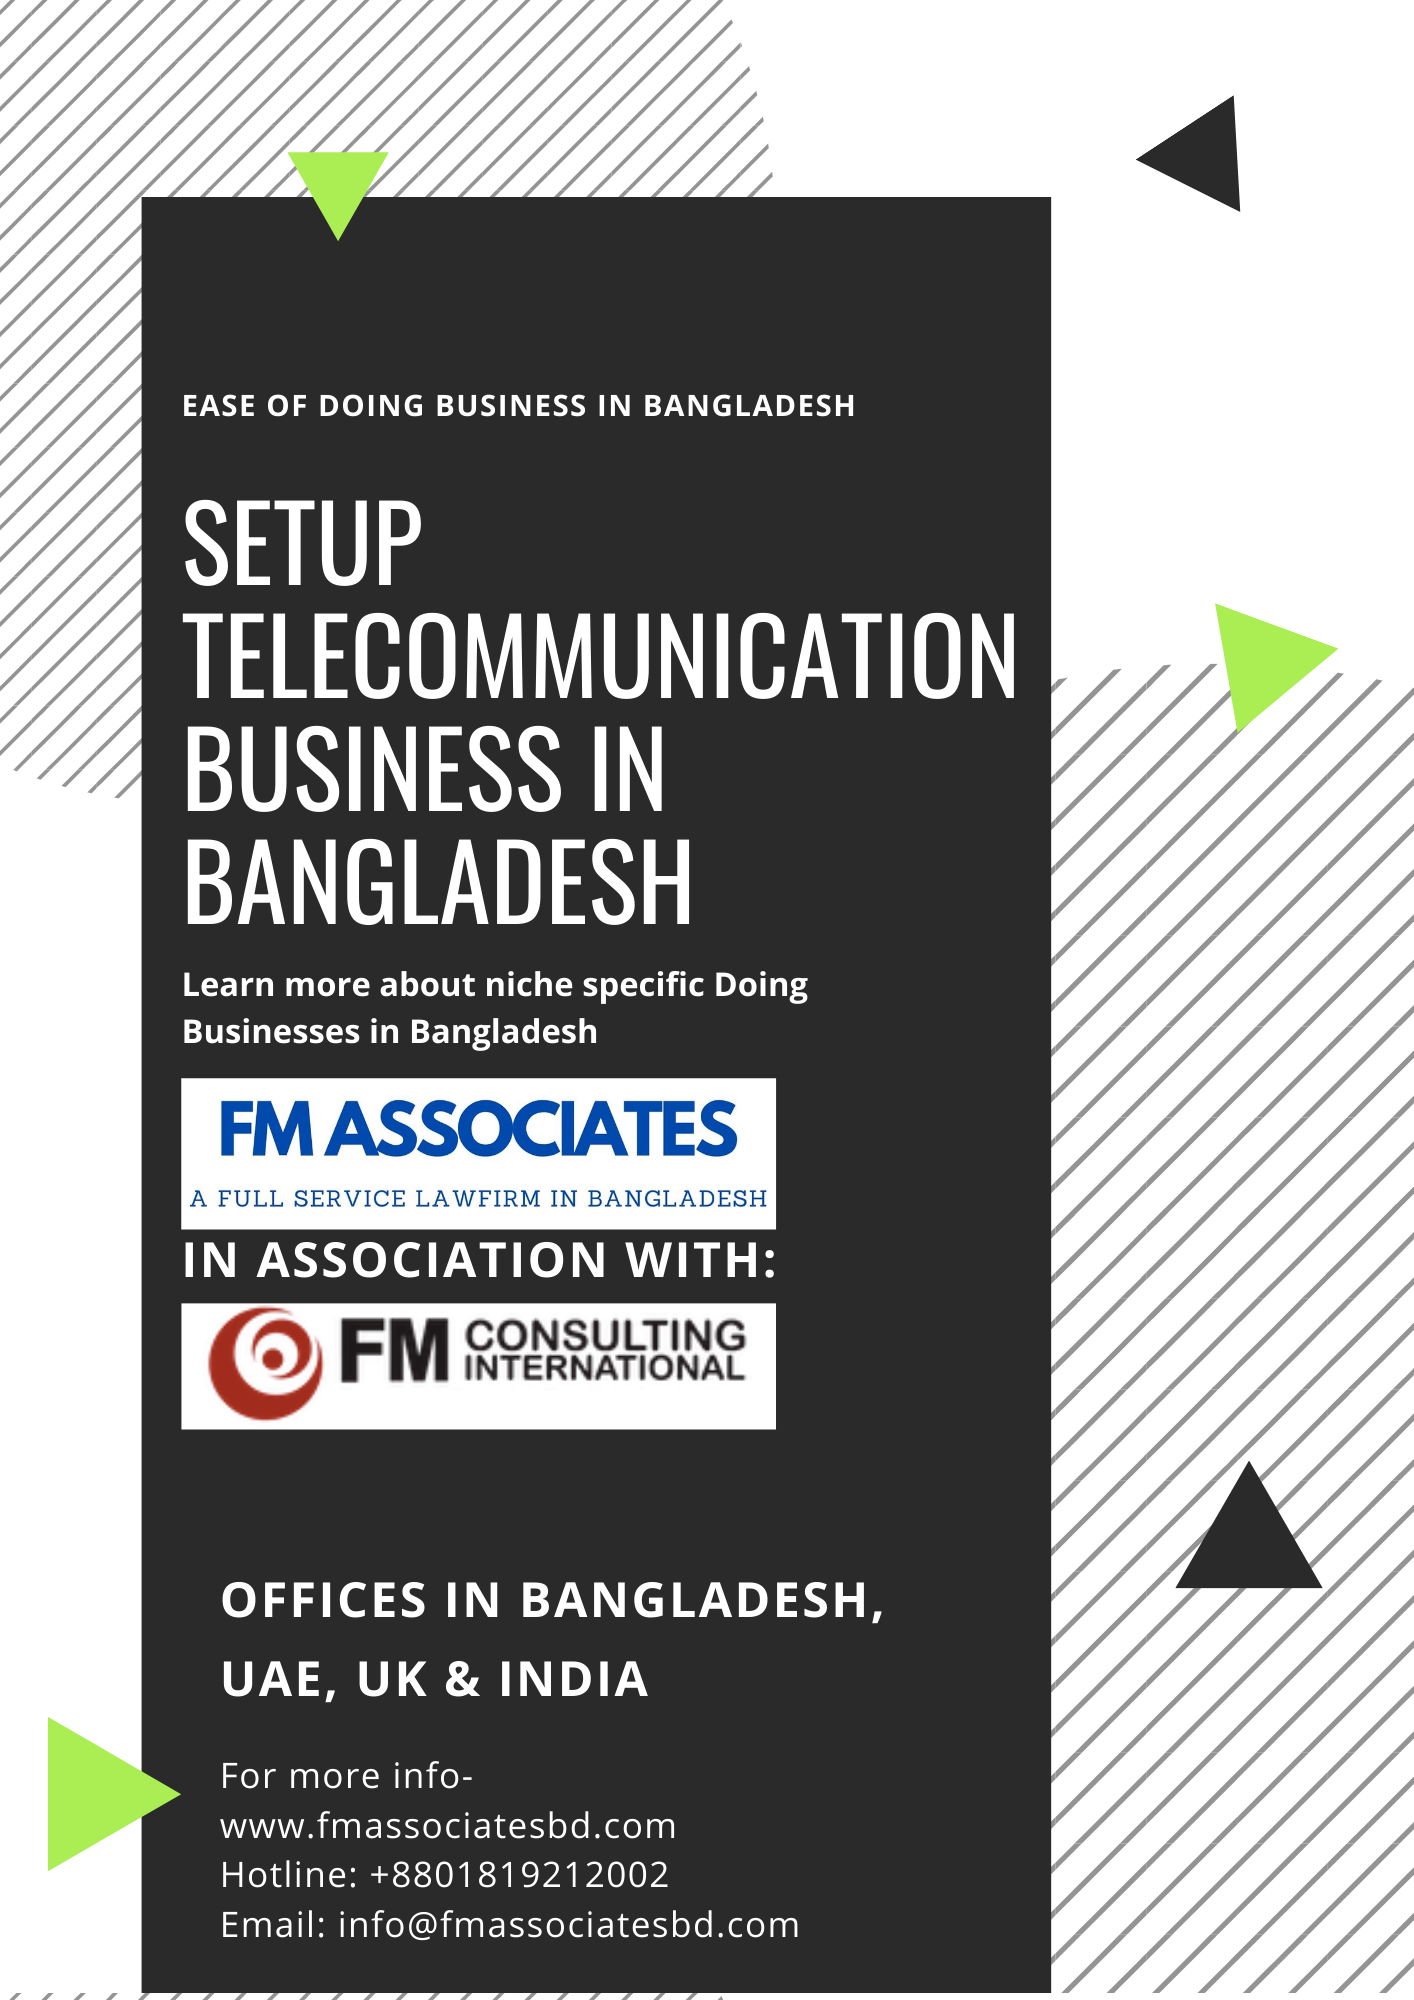 How to Setup Telecommunication Business in Bangladesh